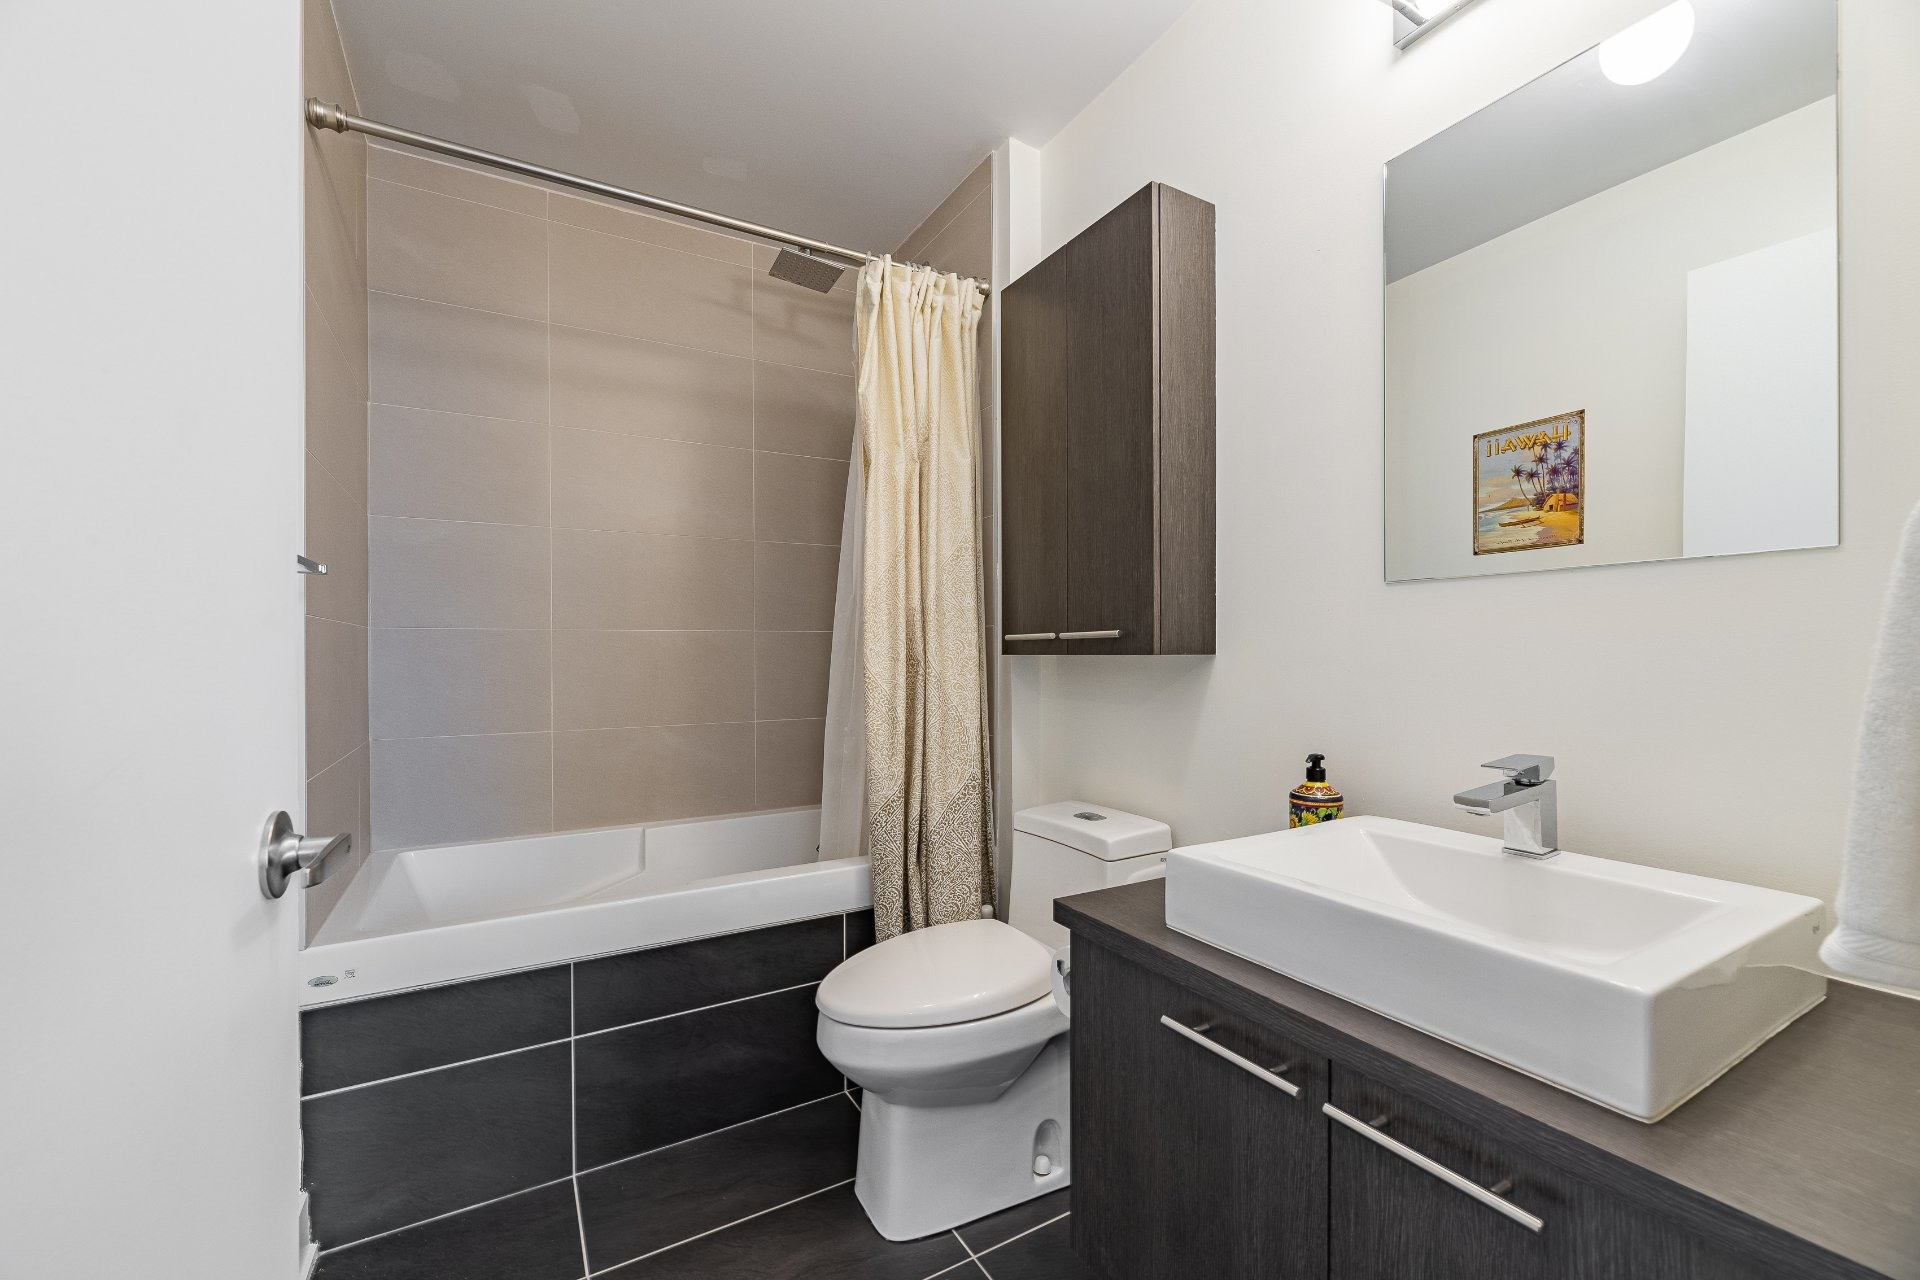 image 15 - Apartment For sale Mercier/Hochelaga-Maisonneuve Montréal  - 5 rooms